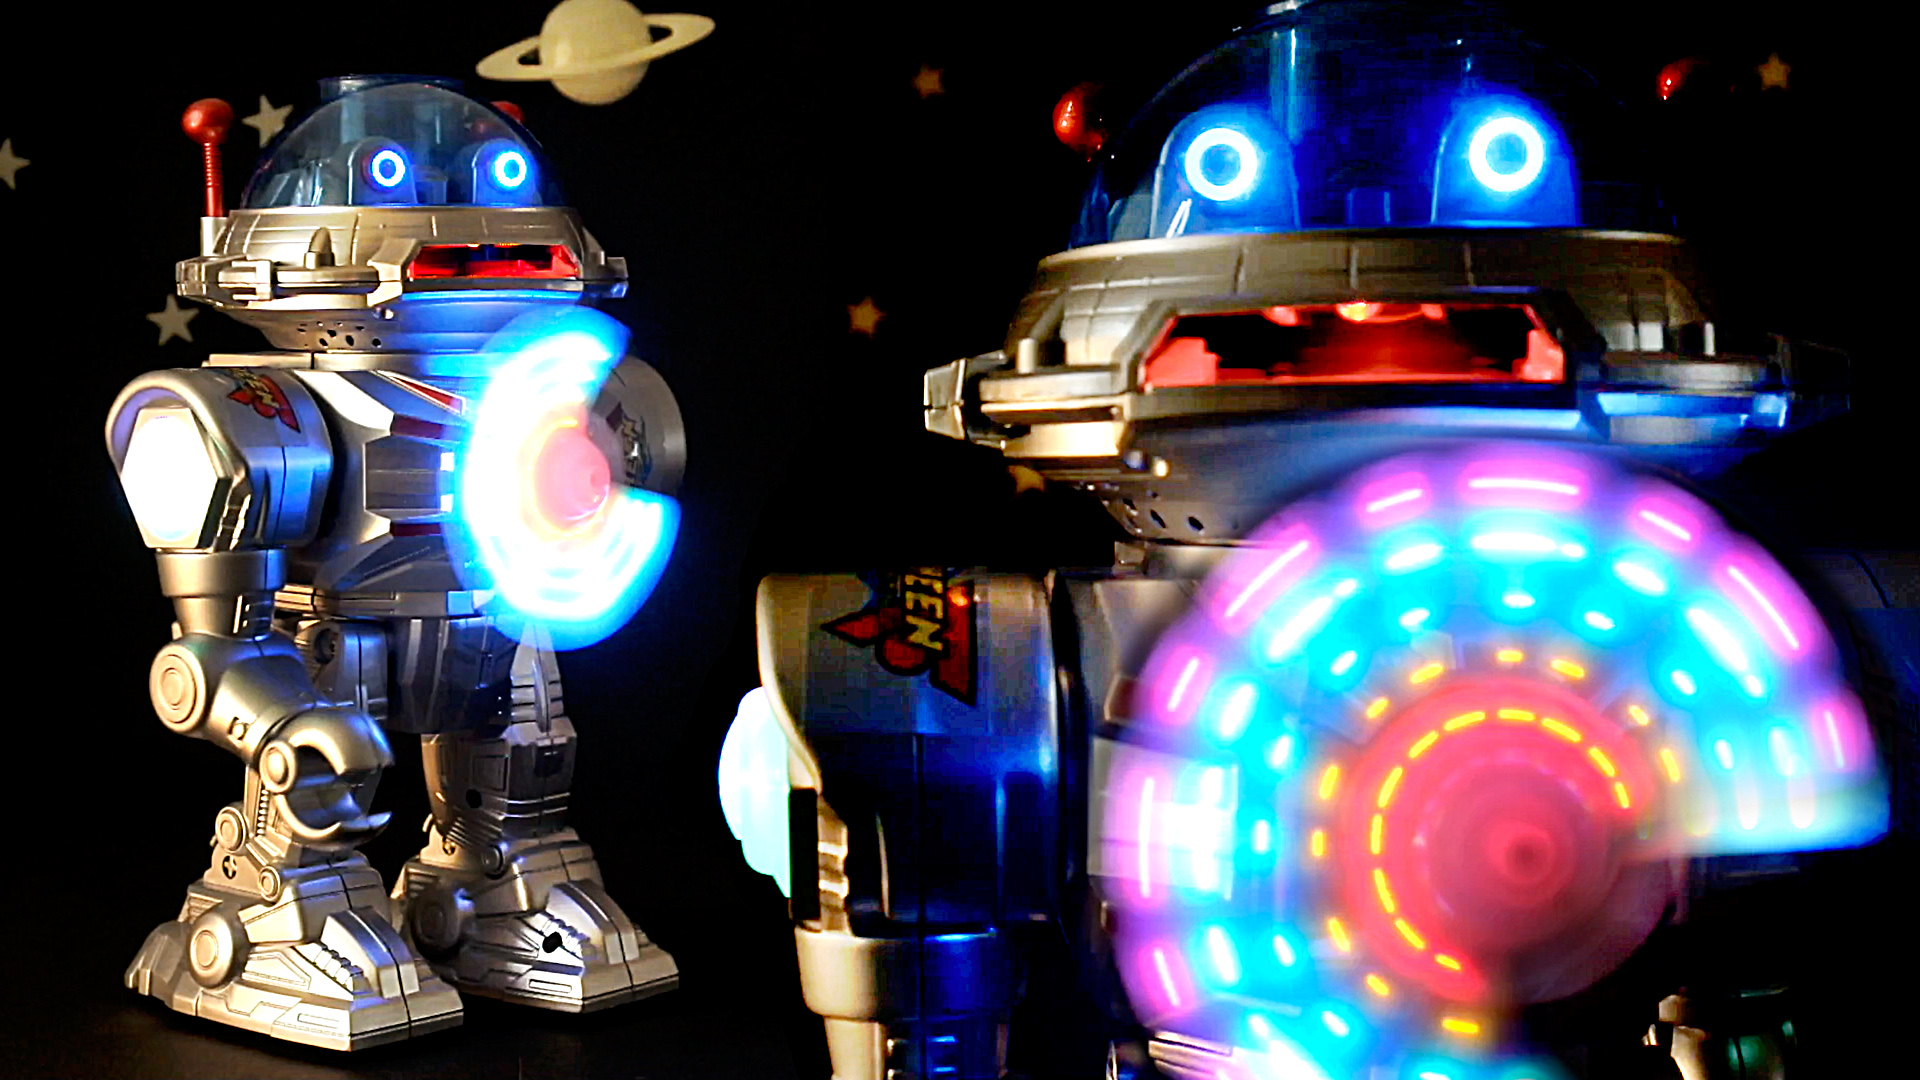 Star Defender // Walking Talking Toy Robot with Spinning LED Display